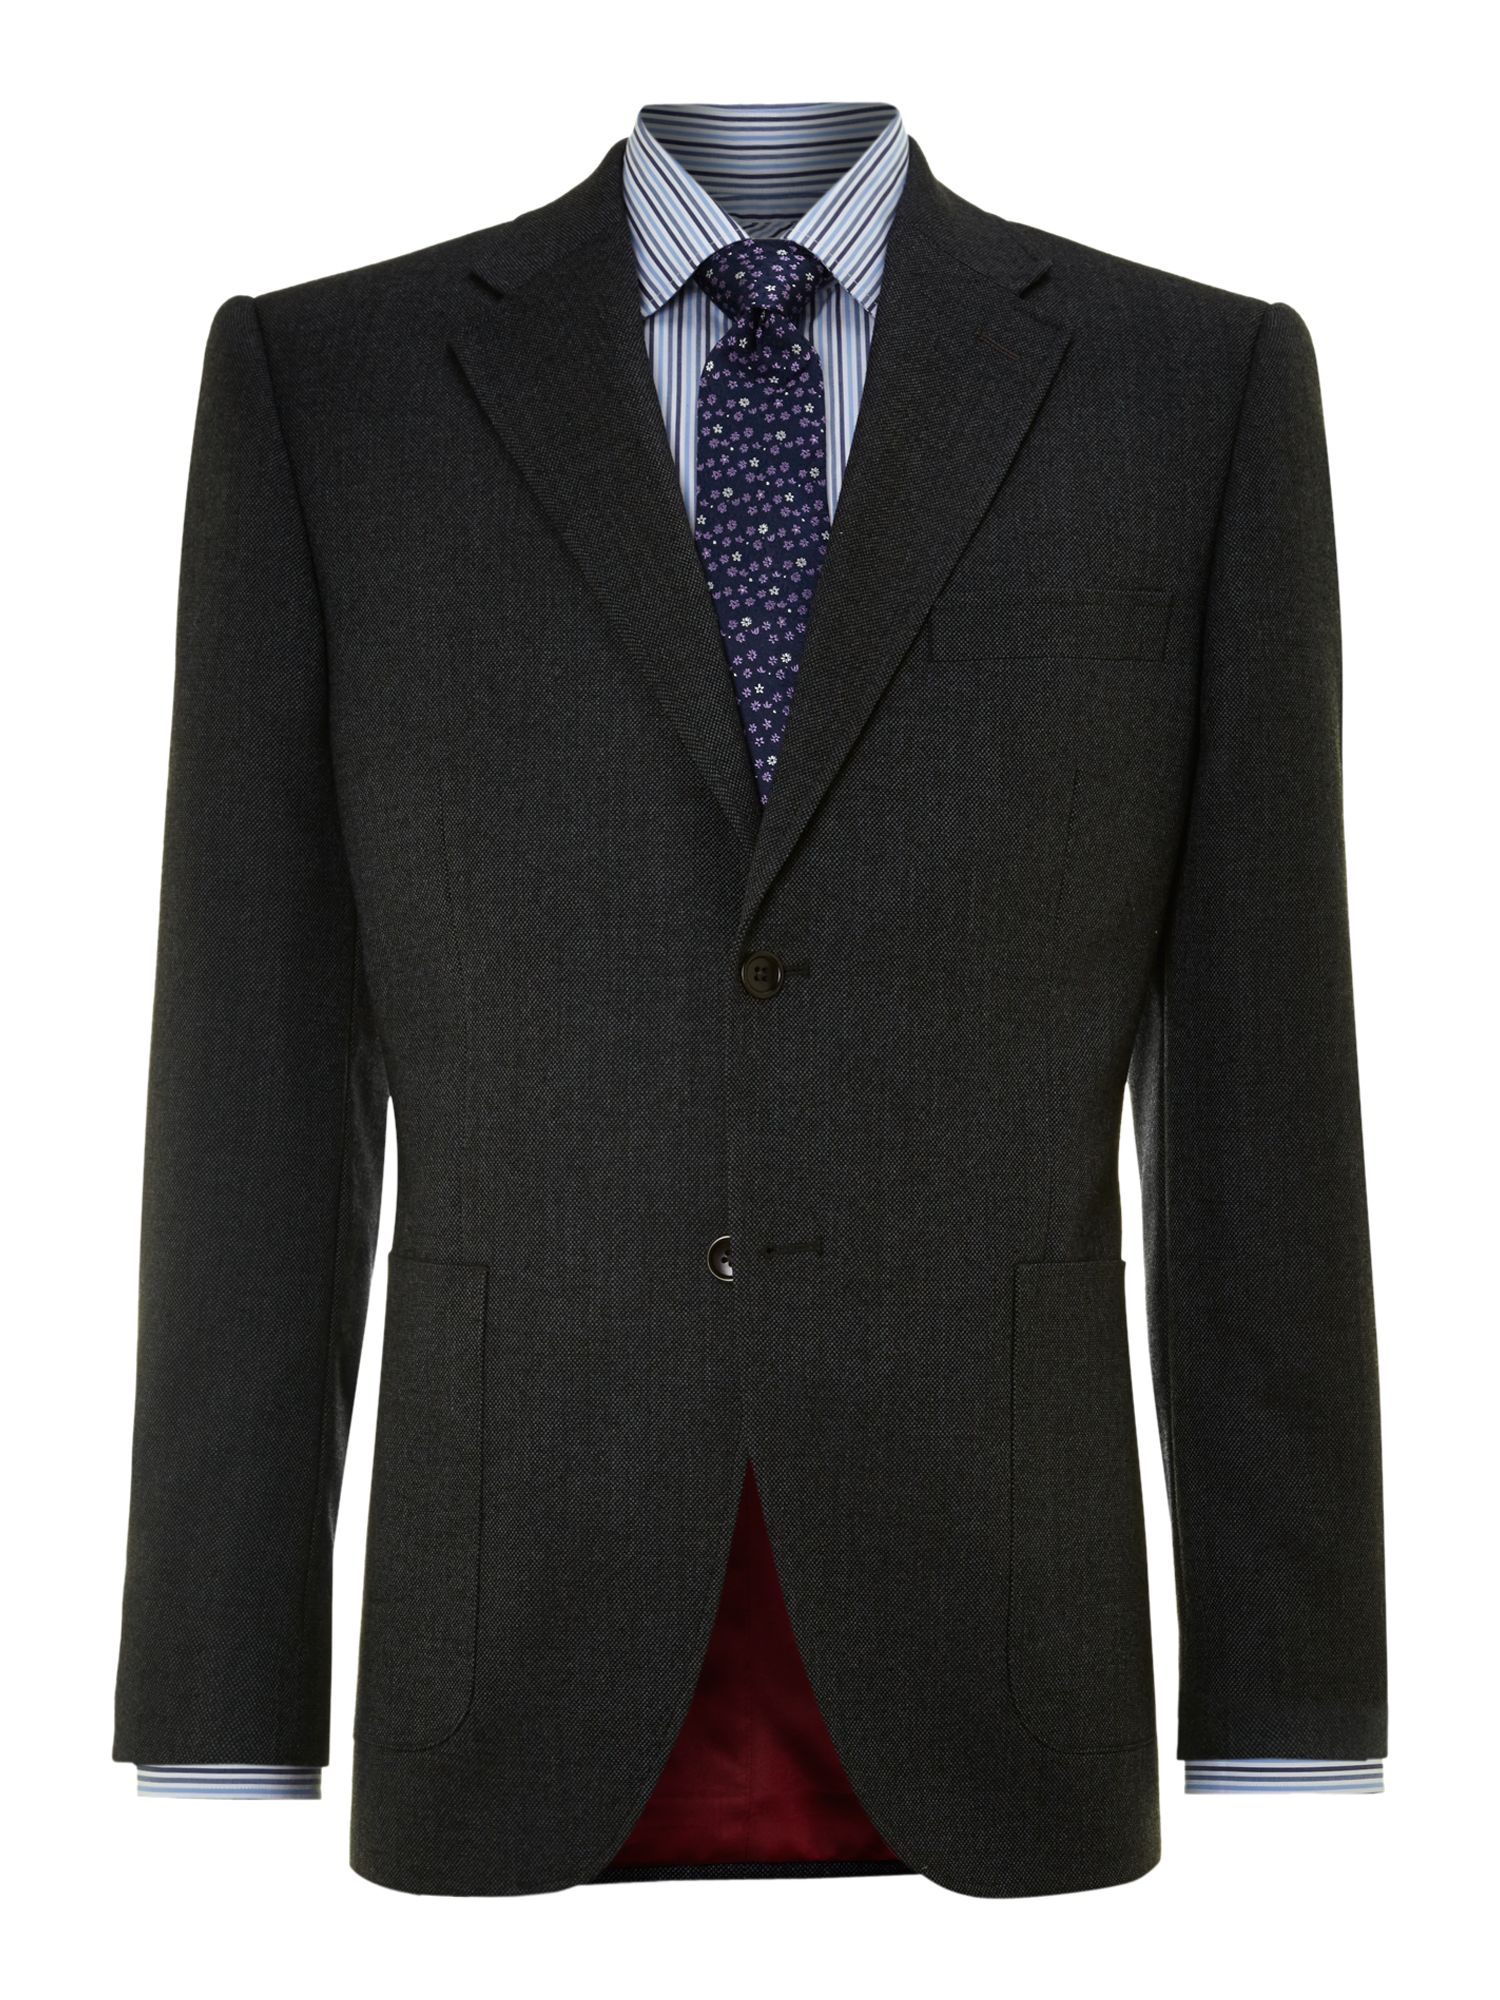 Bancroft Patch Pocket Elbow Patch Blazer